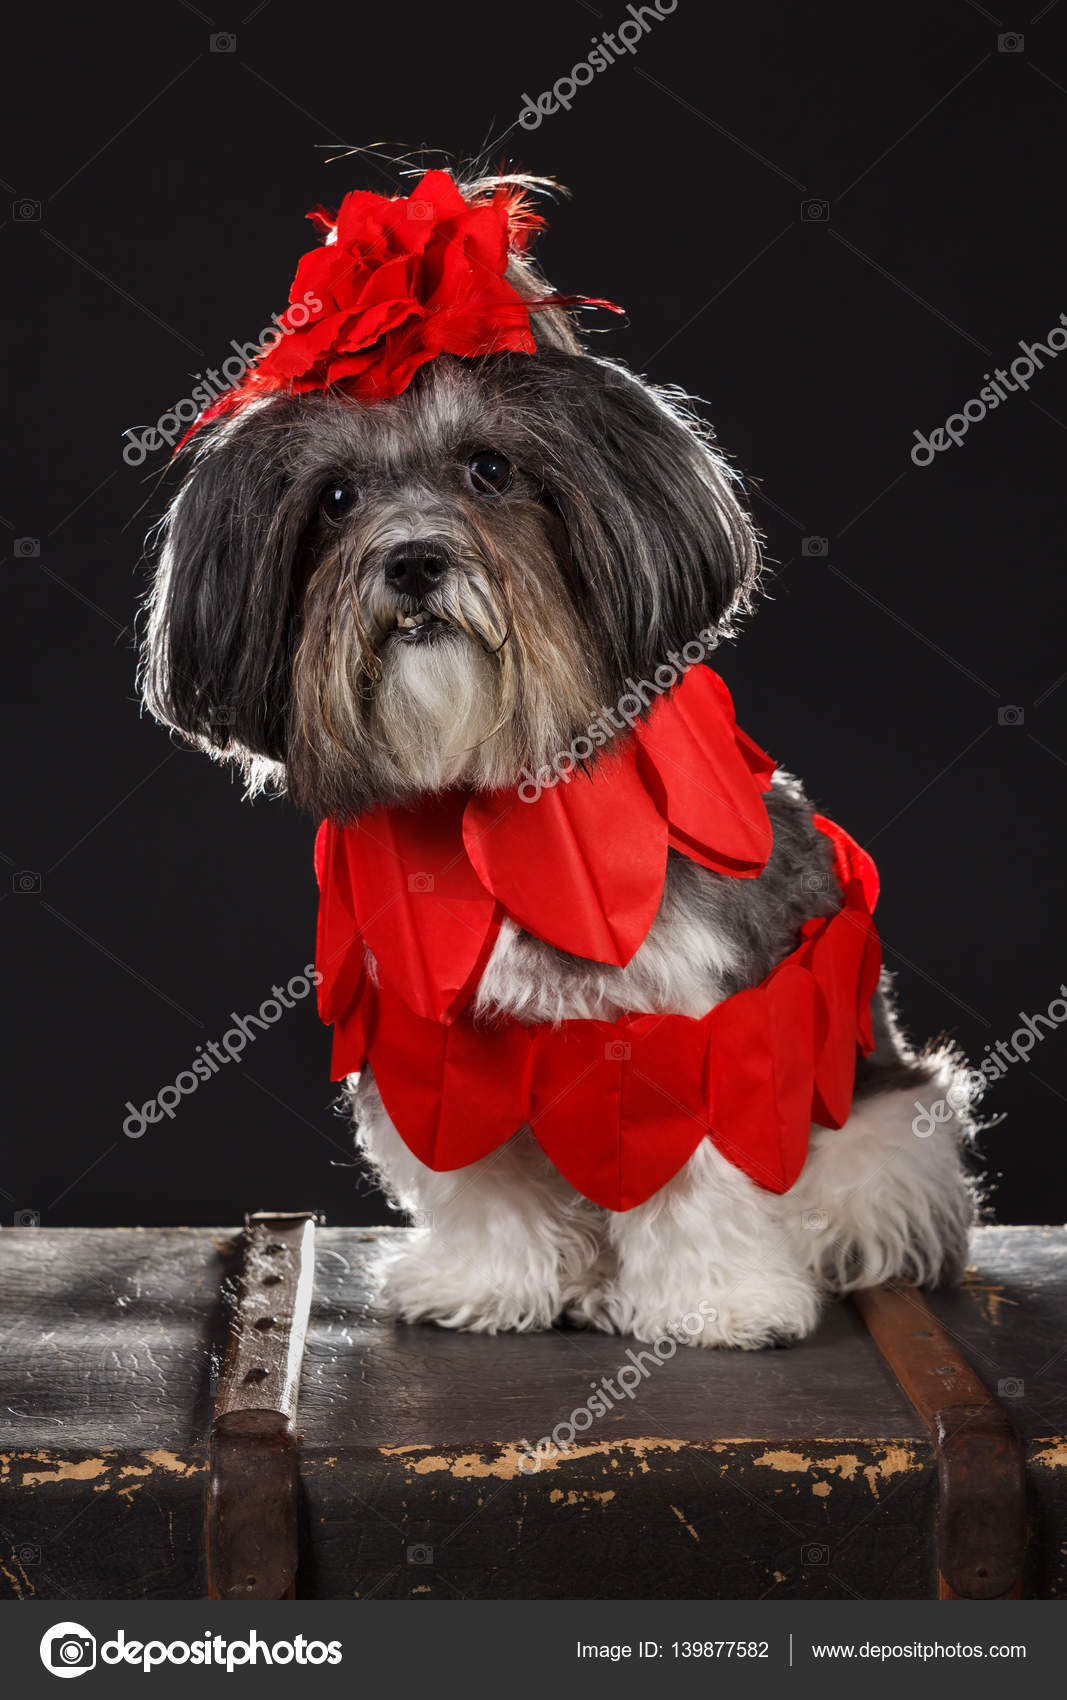 Wonderful Ribbon Bow Adorable Dog - depositphotos_139877582-stock-photo-adorable-dog-dressed-with-red  Trends_587385  .jpg